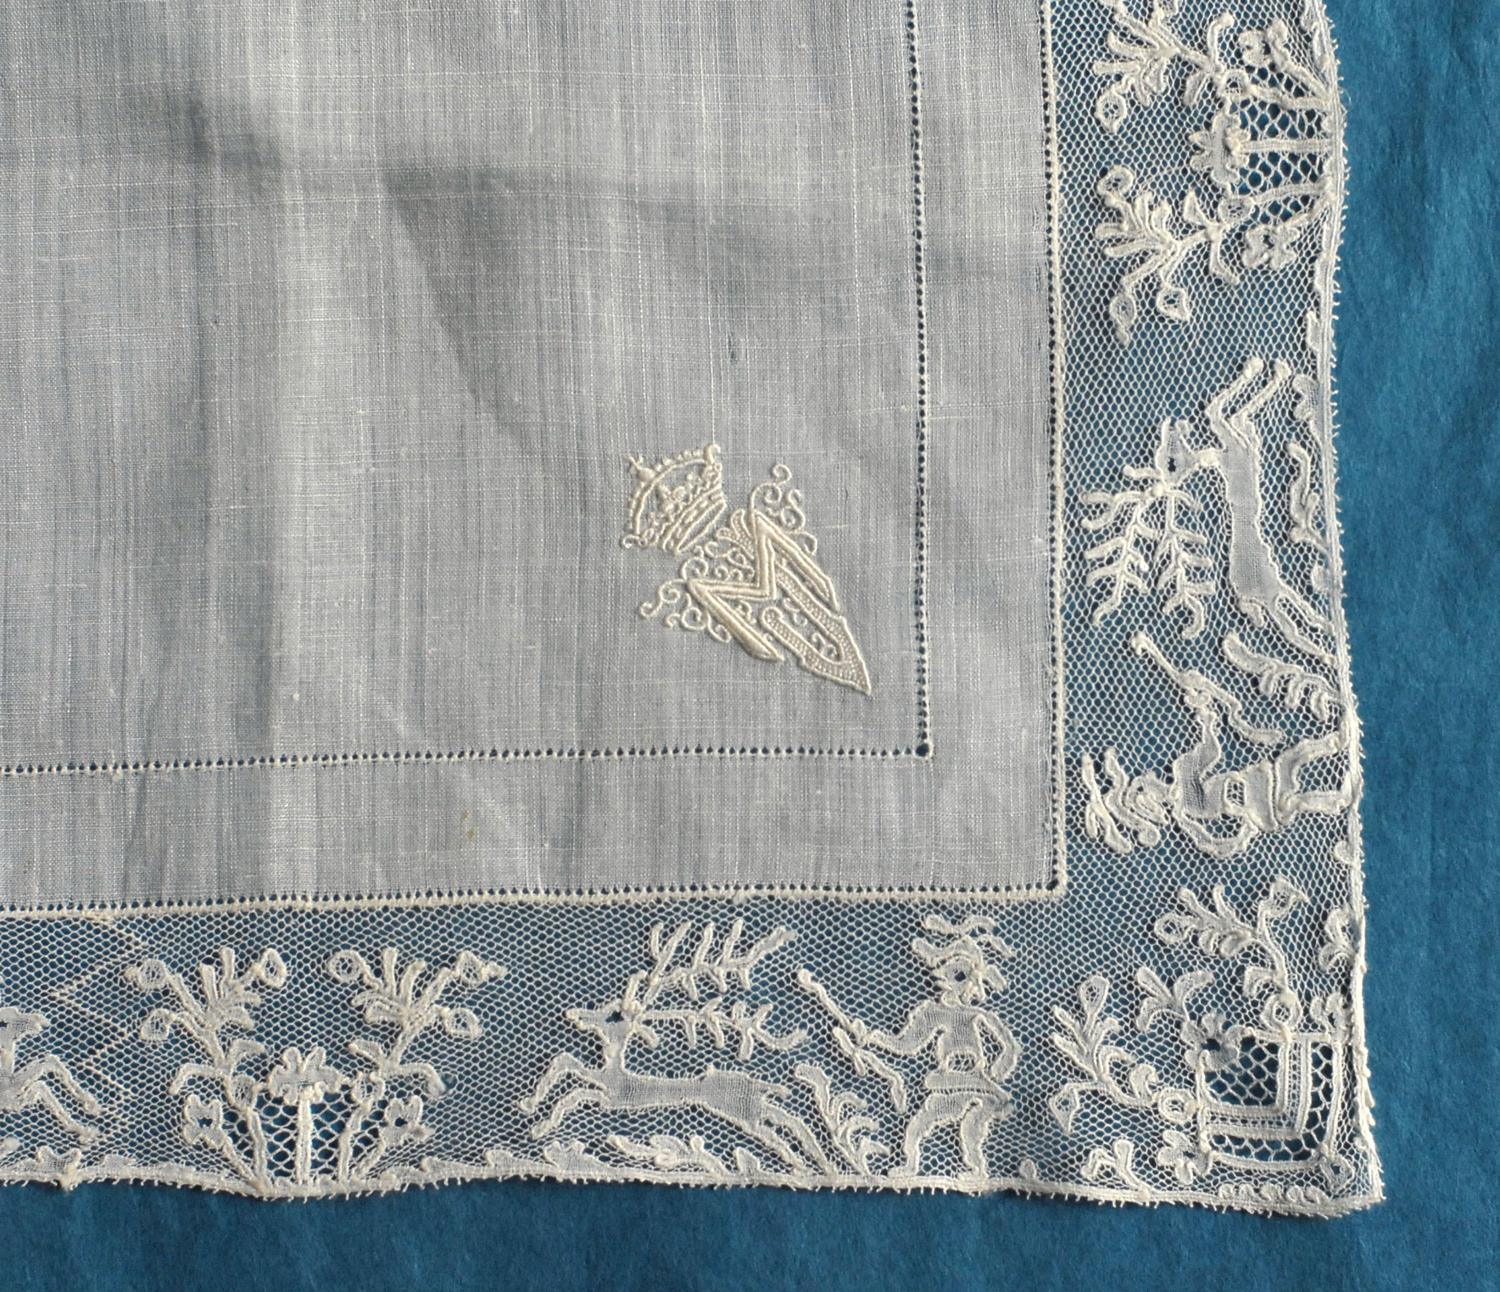 19th Century Mechlin Lace Handkerchief with Royal Monogram